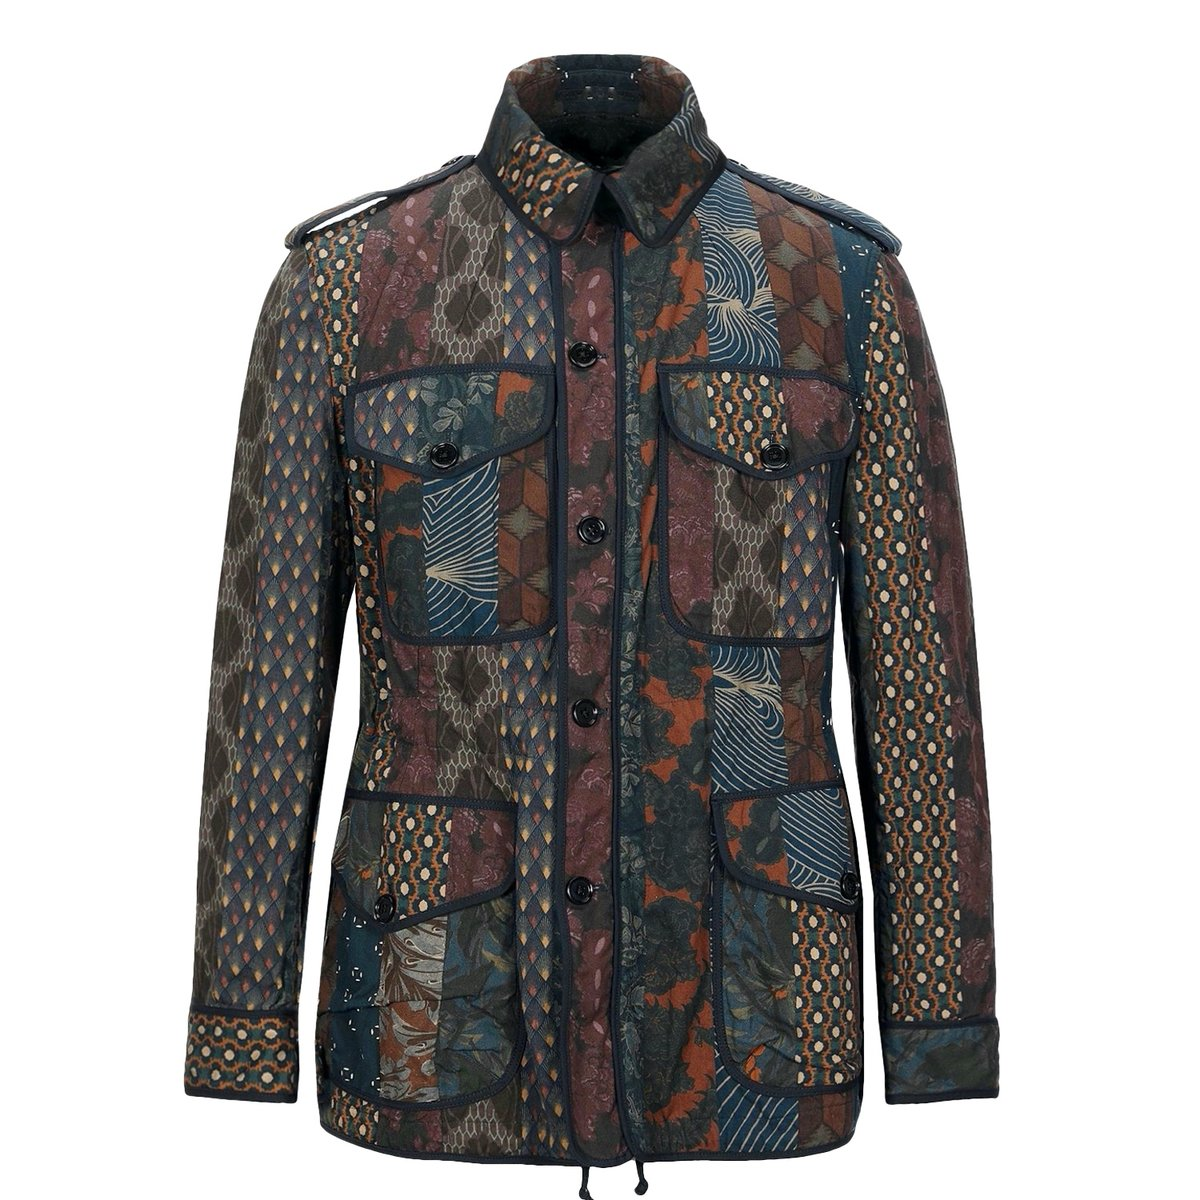 Dries Van Noten Patchwork Print Safari Jacket2.jpg